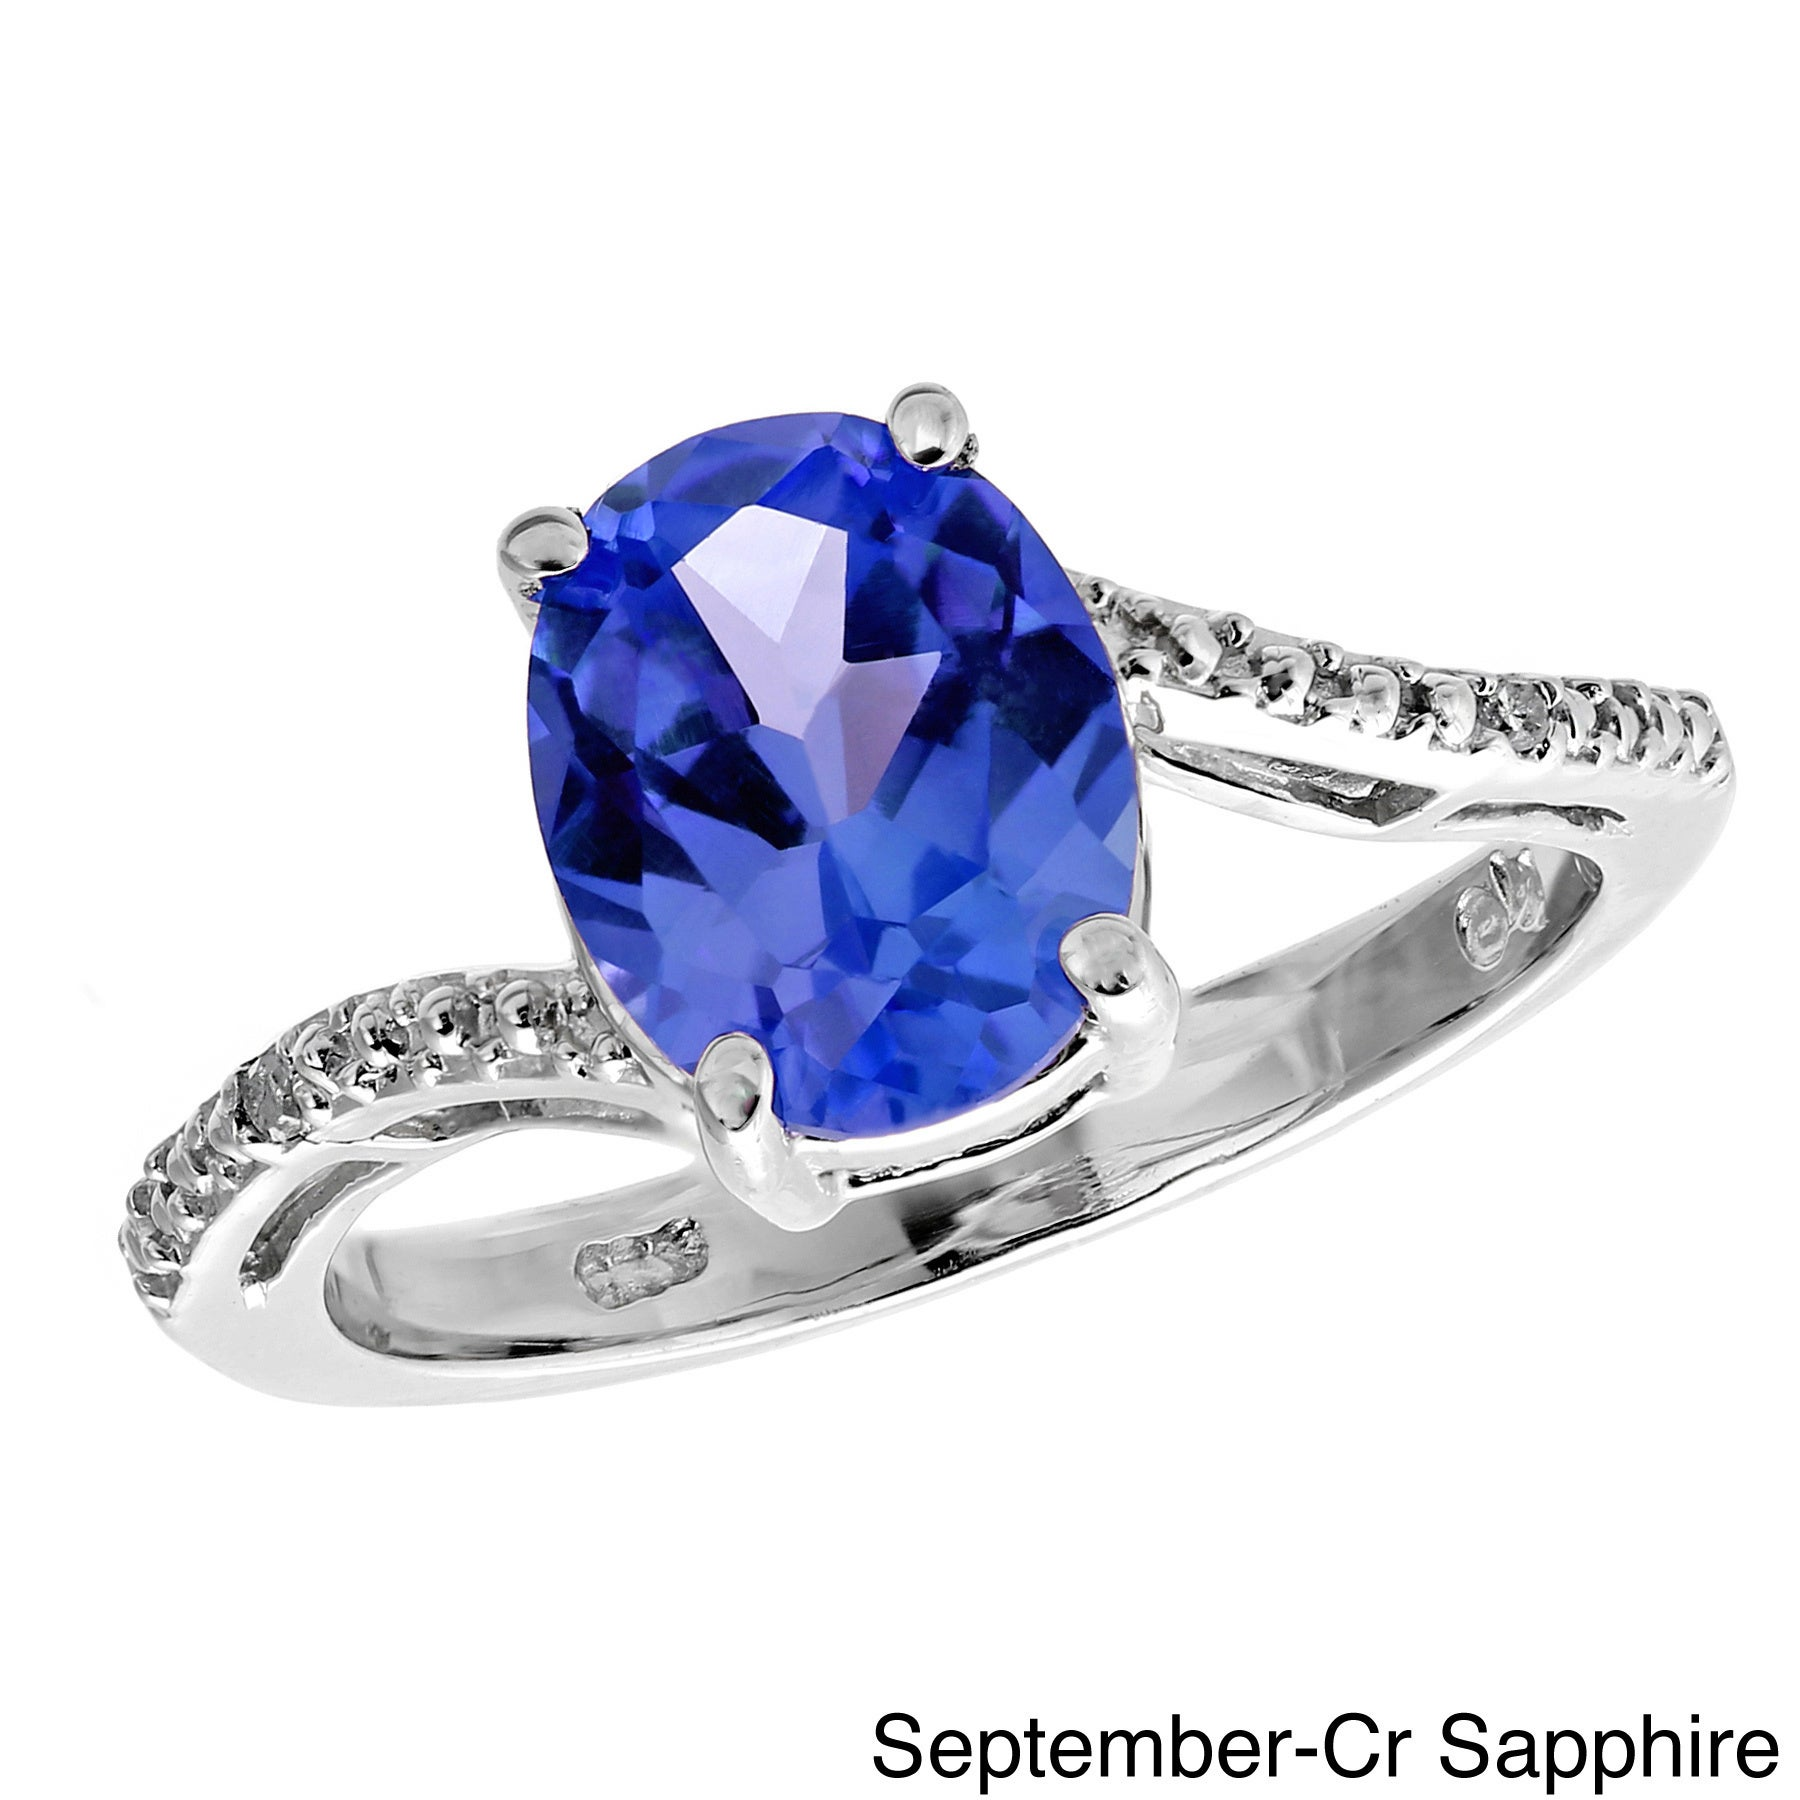 sapphire men september ring blue cz s silver amazon celtic com band birthstone gold dp claddagh knot trinity jewelry cross